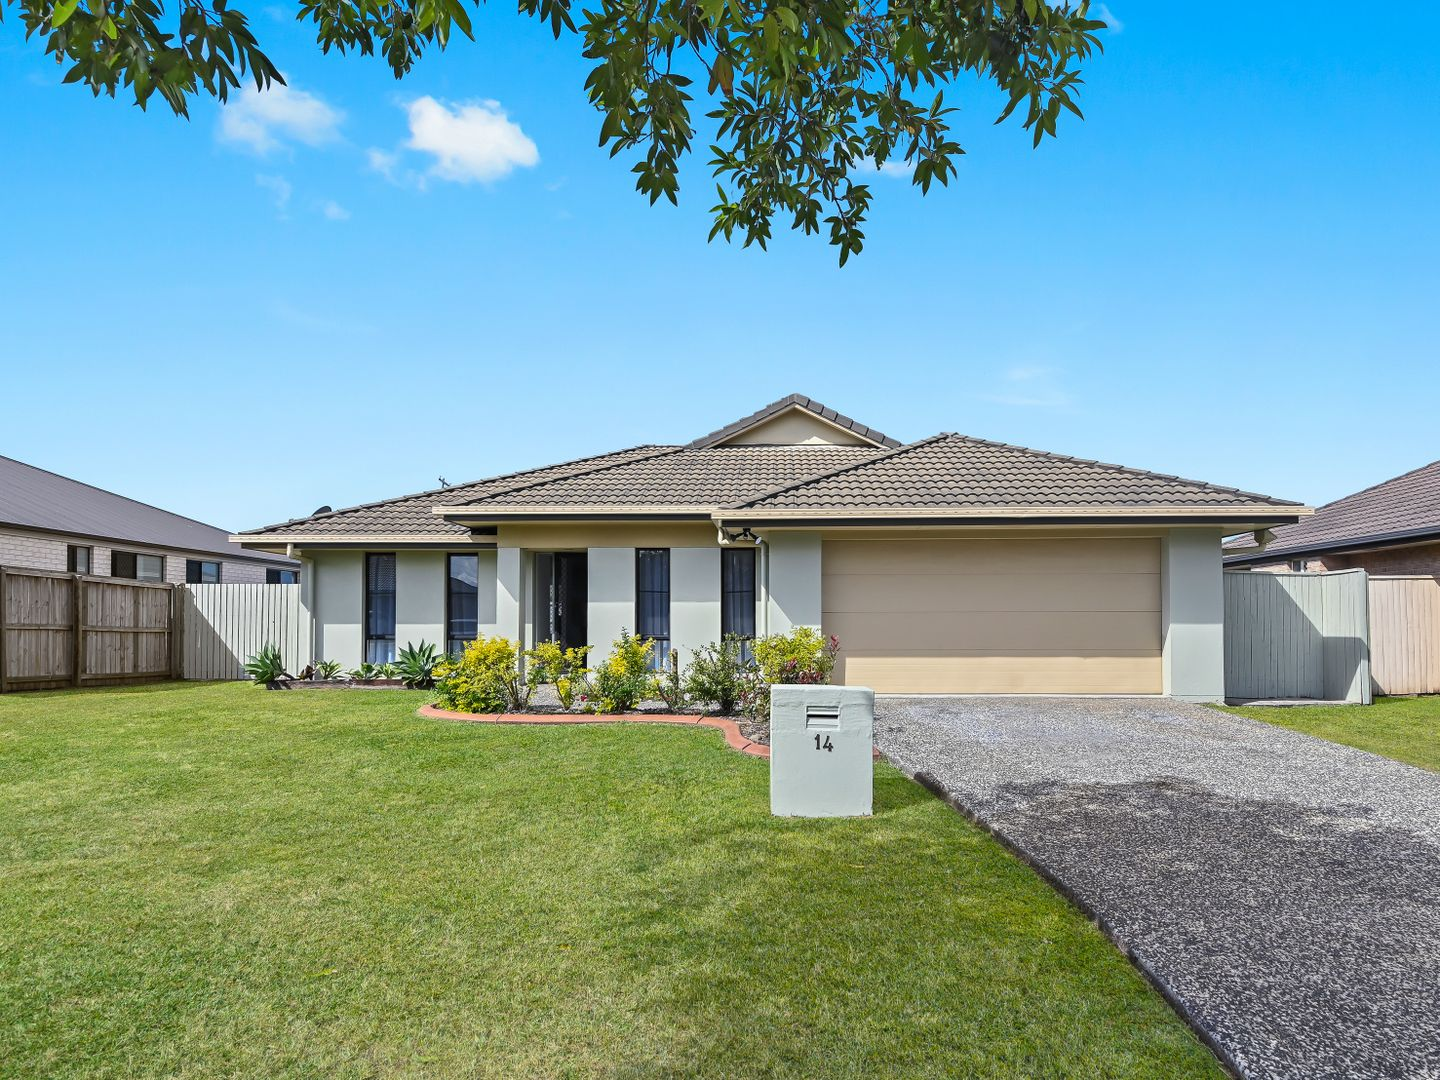 14 Leopardtree Drive, Upper Caboolture QLD 4510, Image 0